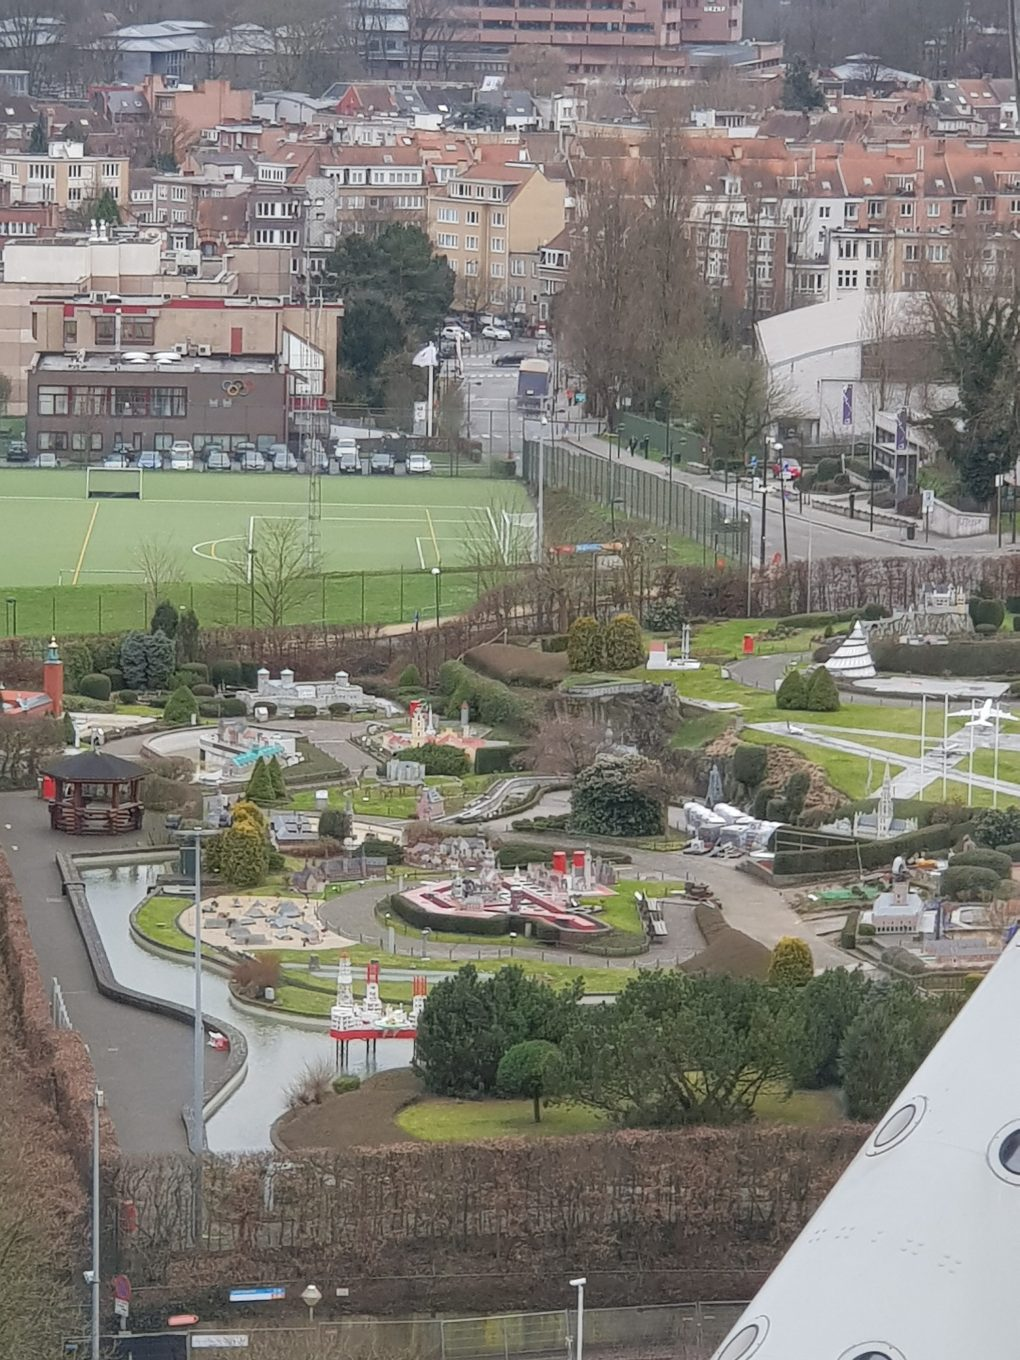 A view from the Atomium over mini-Europe. Model landscapes of all the different countries in Europe